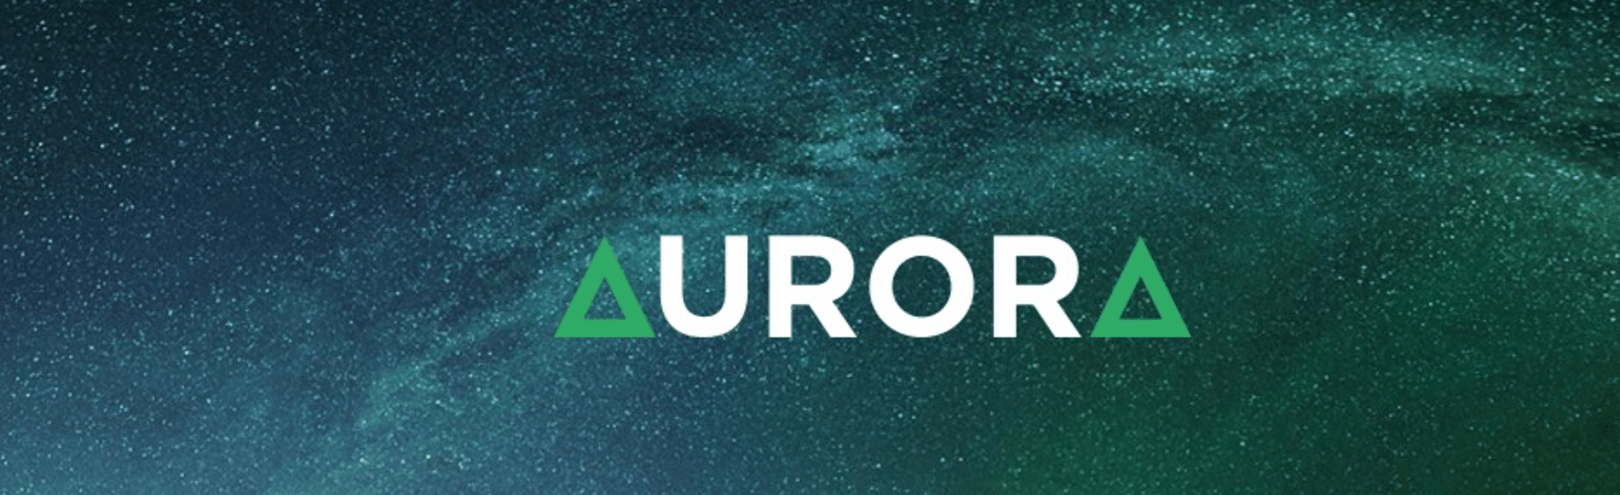 Aurora Alliance receives a large grant to strengthen research and innovation - Available at University of Iceland